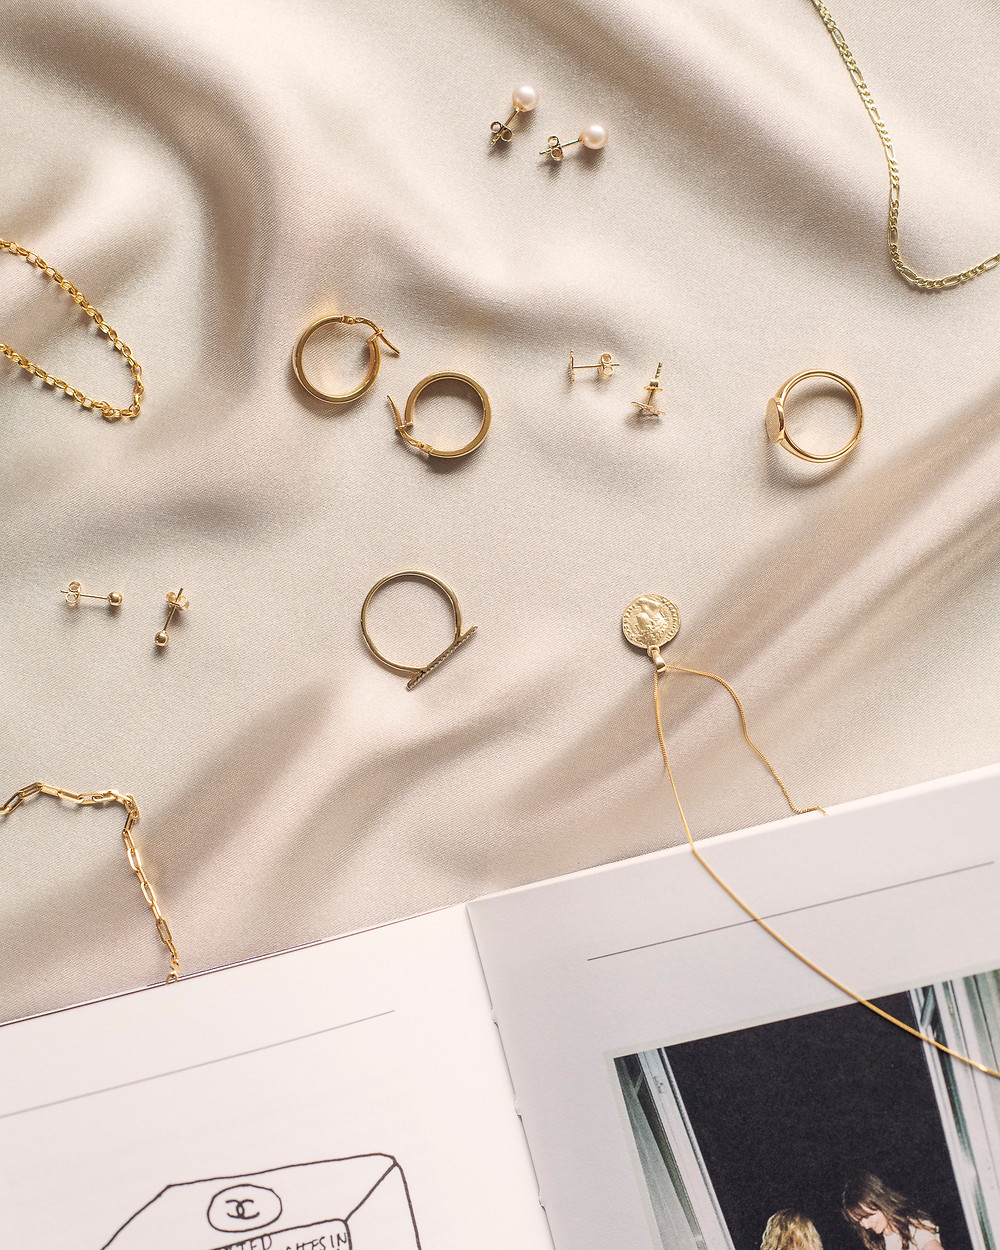 A flat lay image of a variety of gold jewellery on a silk background with a book.